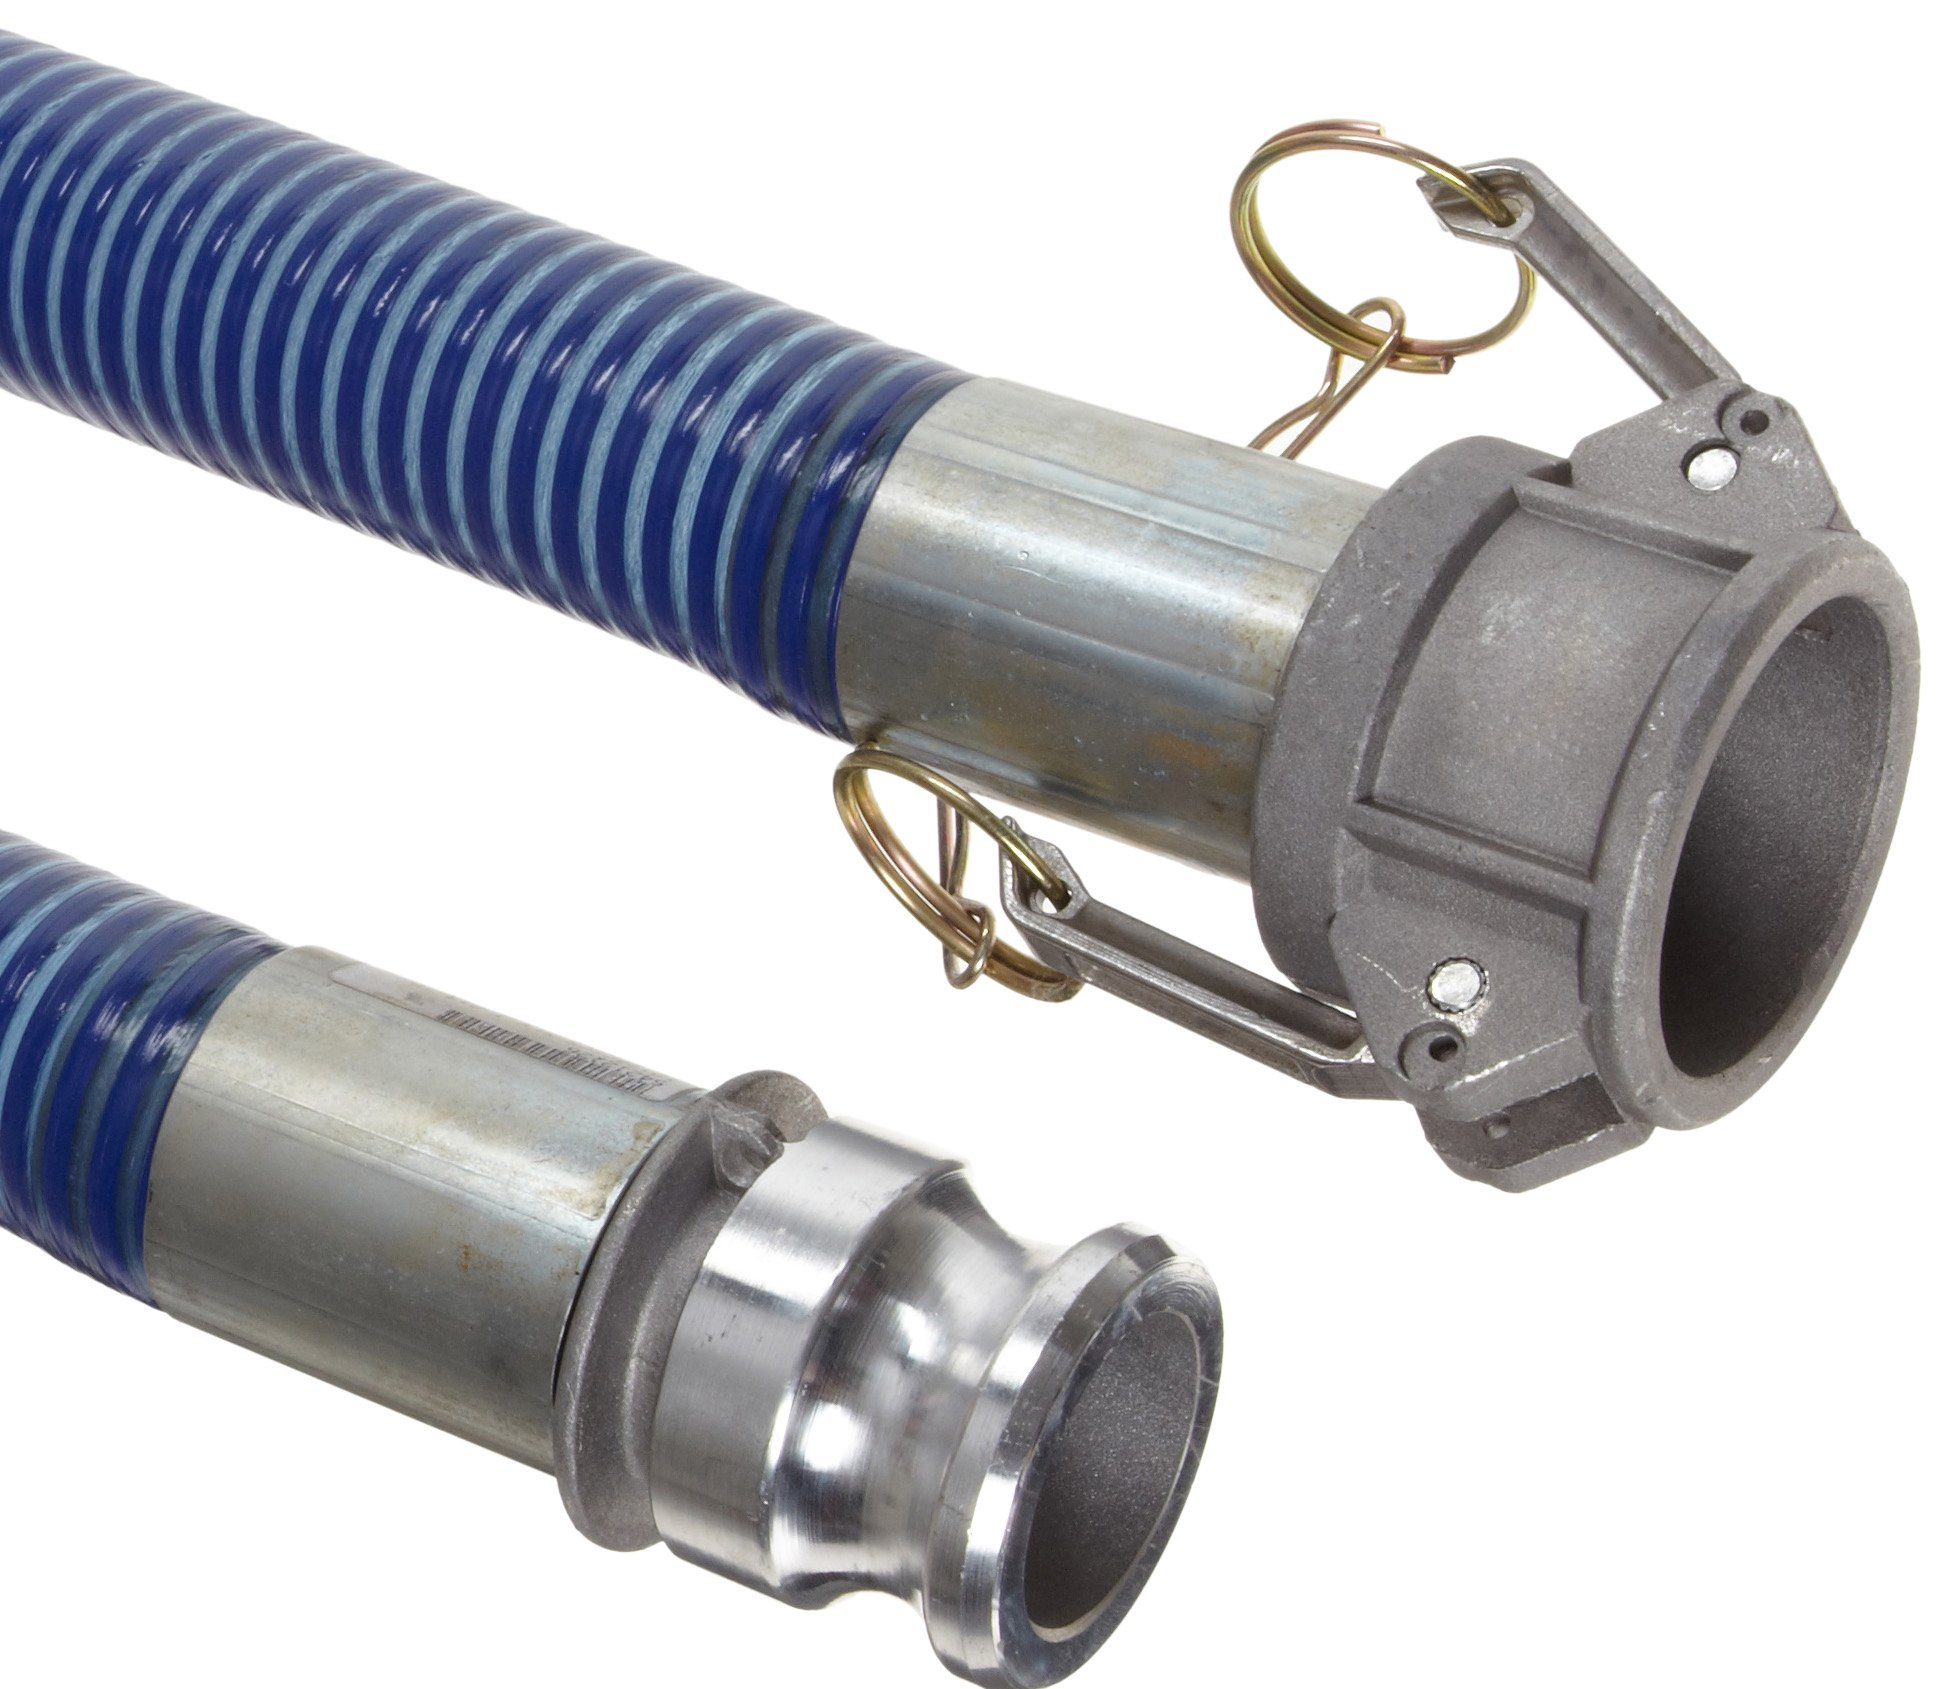 Goodyear EP Cold  Blue PVC Suction/Discharge Hose Assembly, 1-1/2'' Aluminum Cam And Groove Connection, 29mmHg Vacuum Rating 89 PSI Maximum Pressure, 20' Length, 1-1/2'' ID